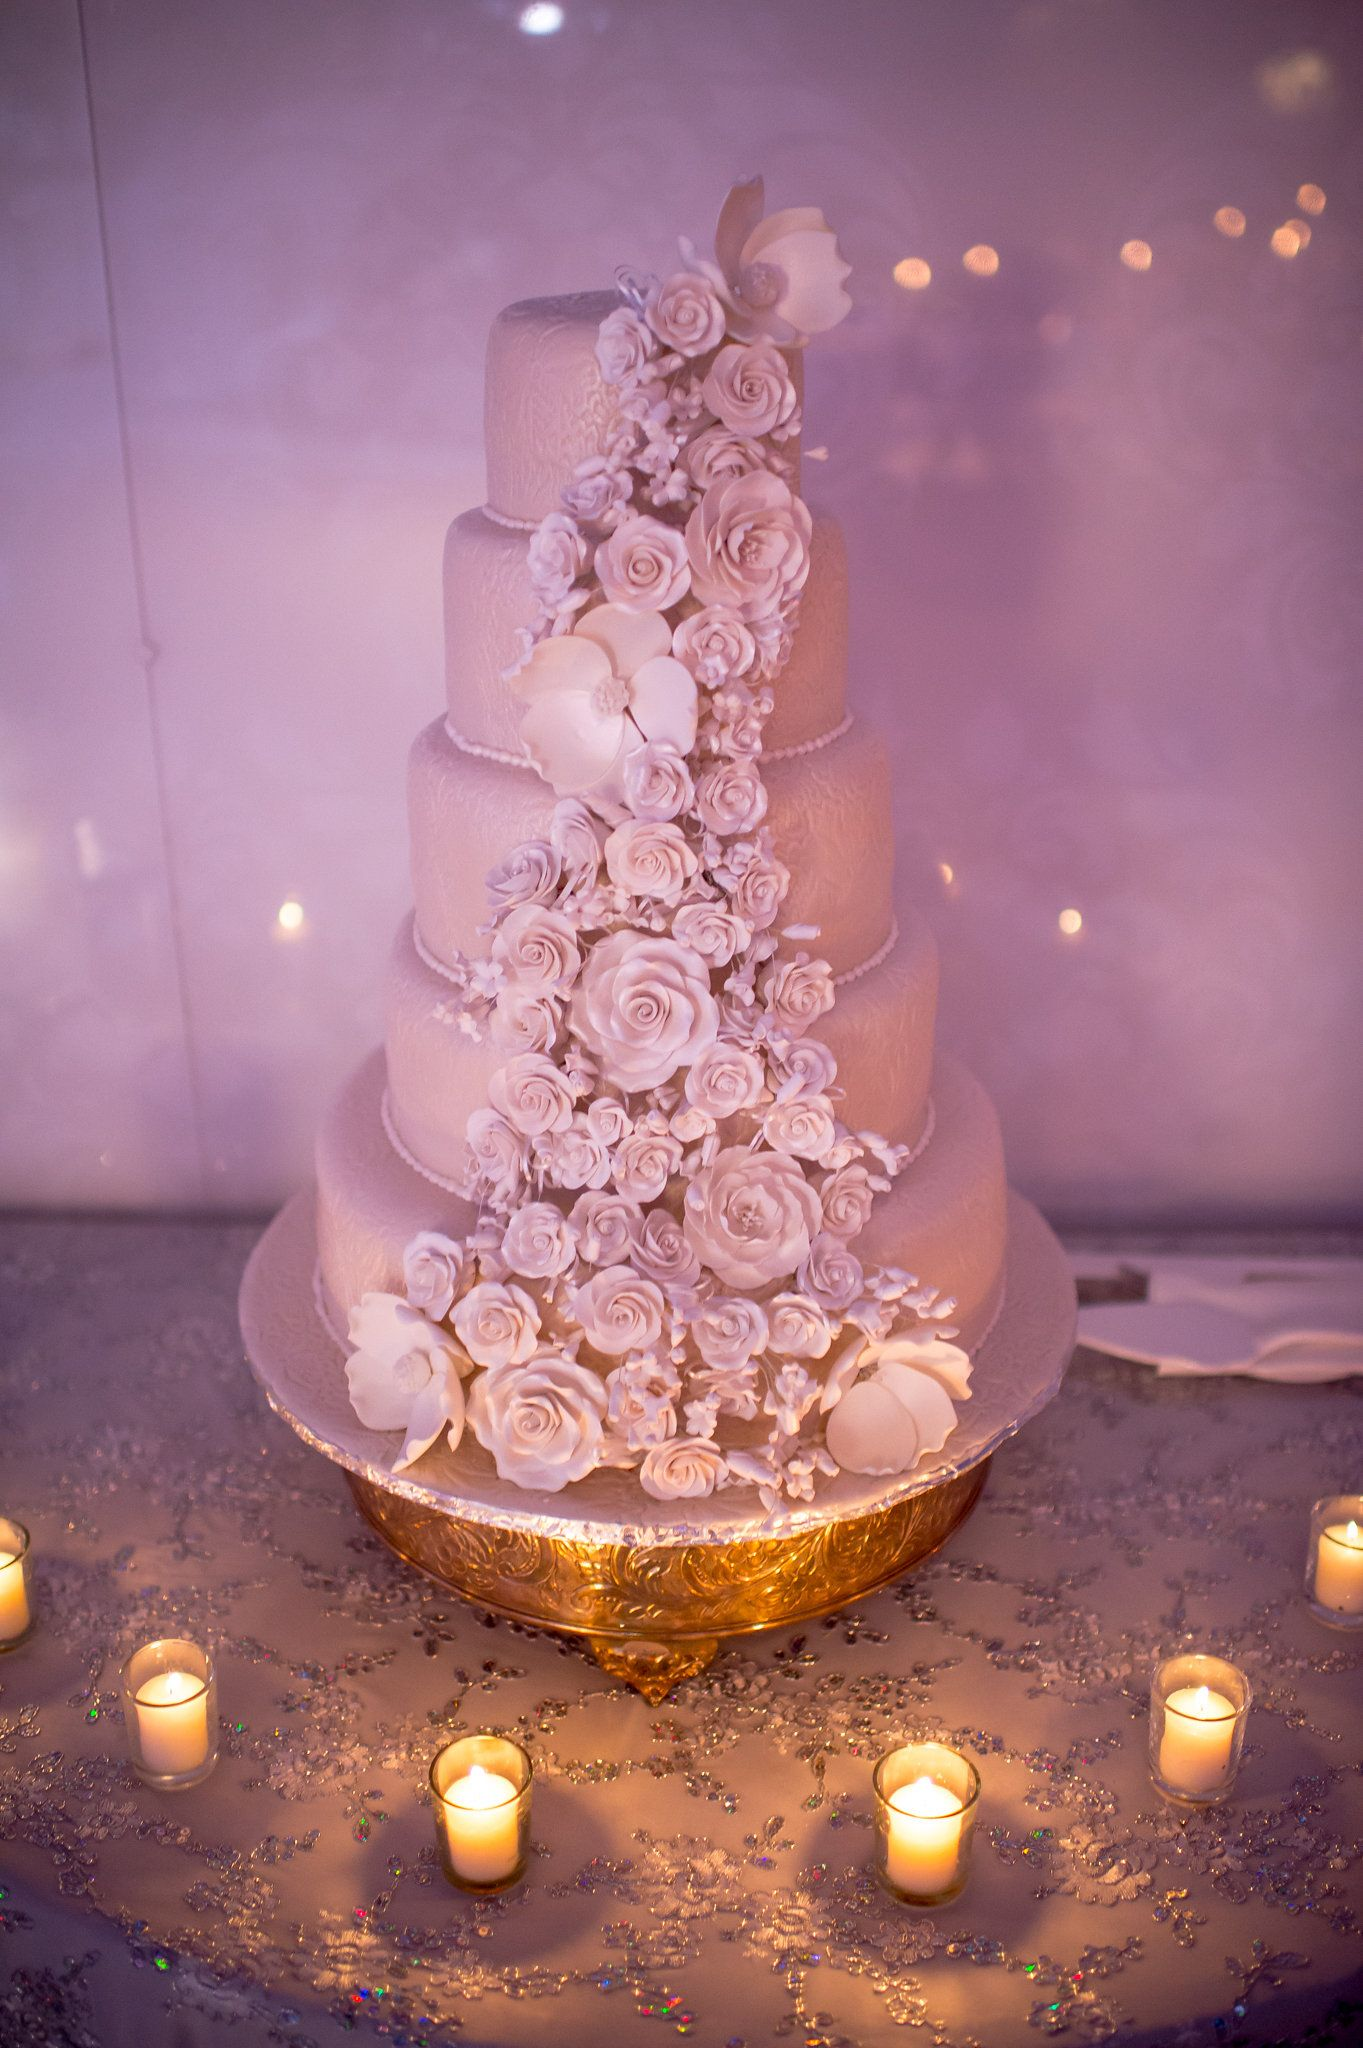 Perfectly Sculpted Roses for this Stunning 5 Tier Wedding Cake ...